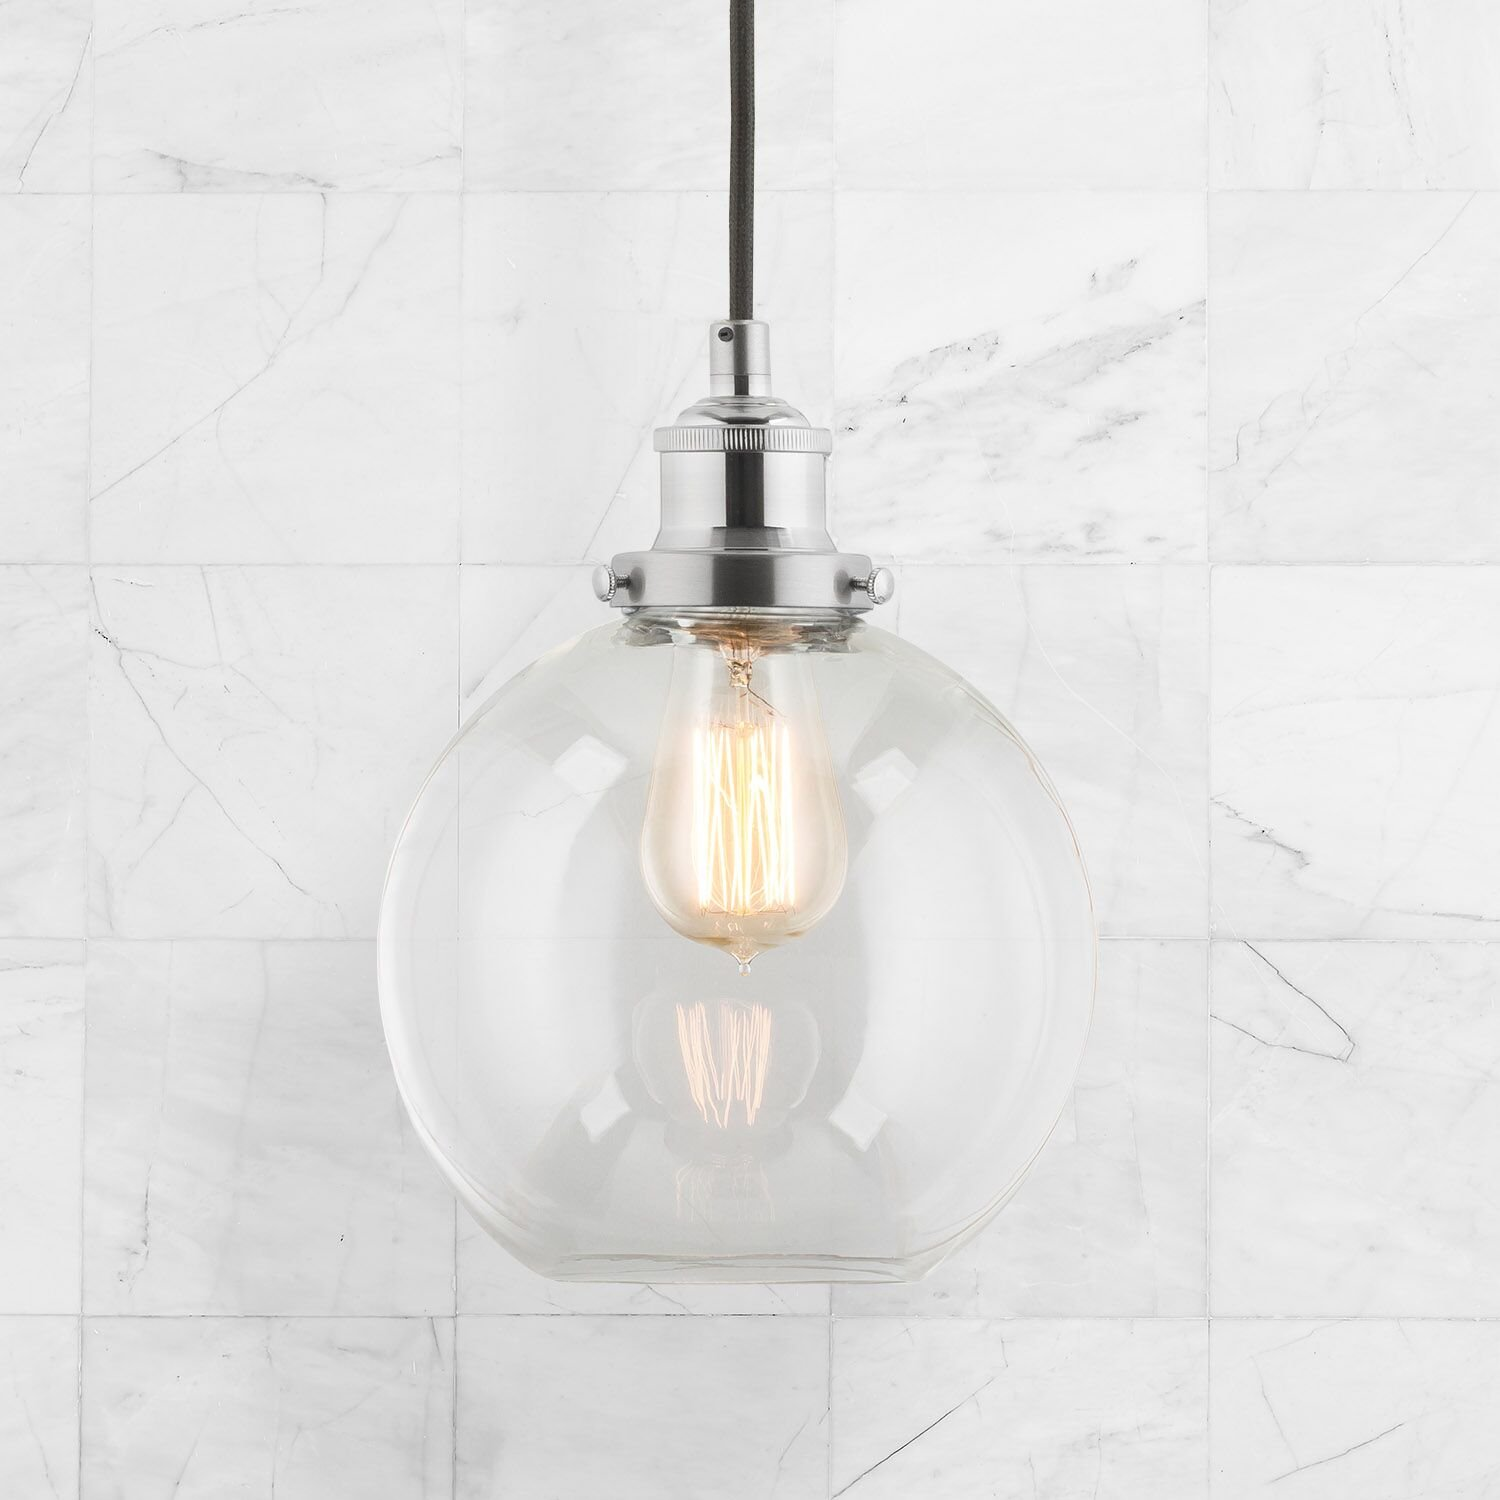 Primo Industrial Kitchen Pendant Light Brushed Nickel